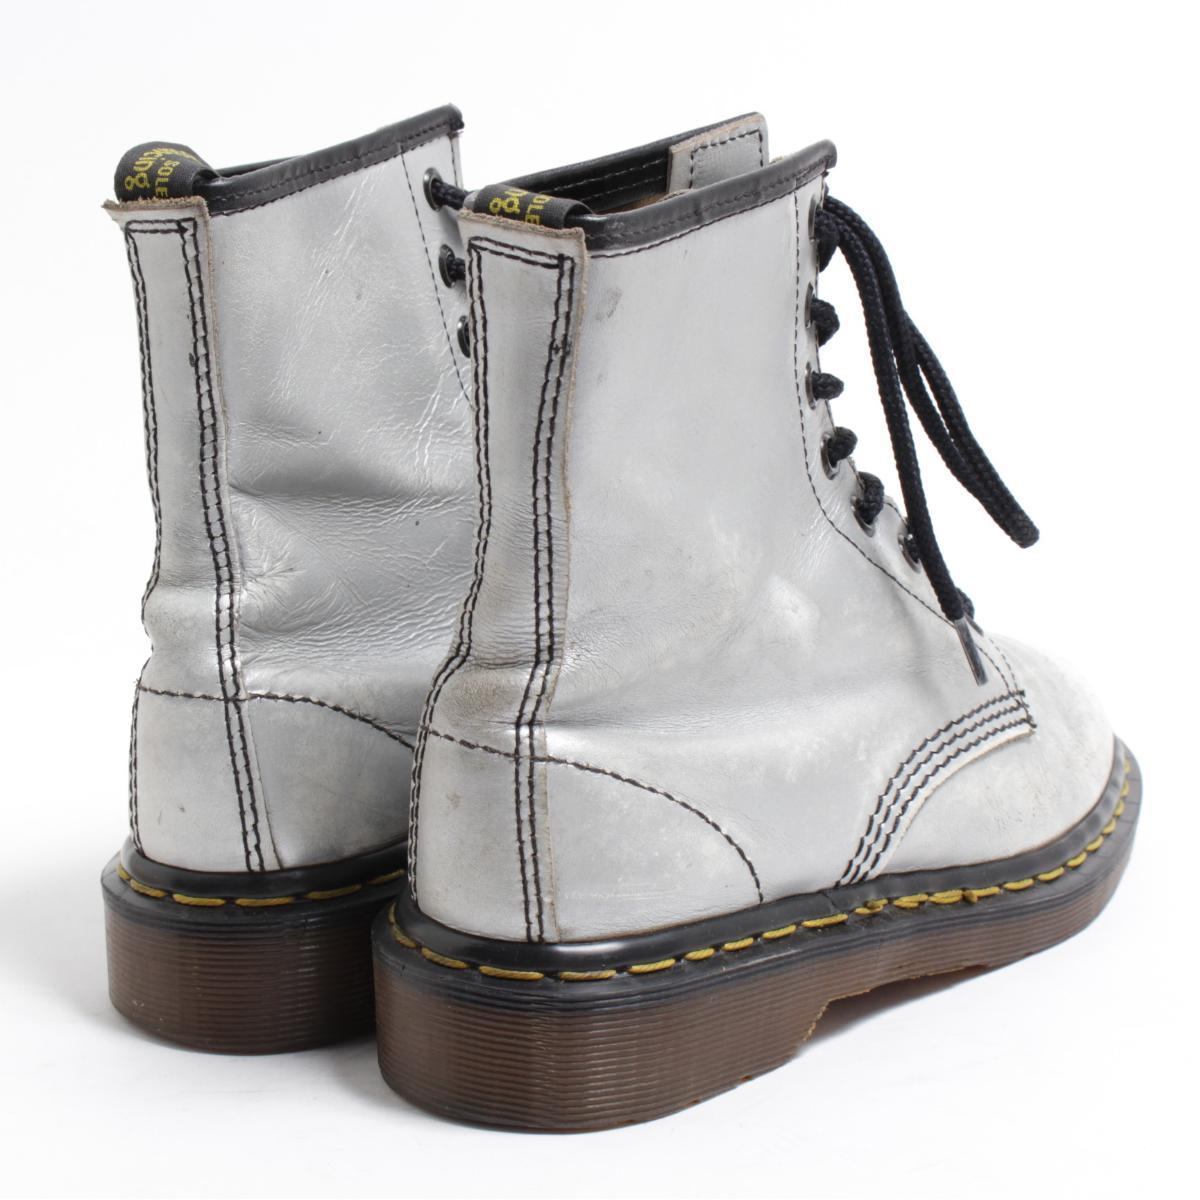 UK4 Lady's 22.5cm /bom6452 made in the doctor Martin Dr.Martens 8 hall boots U.K.